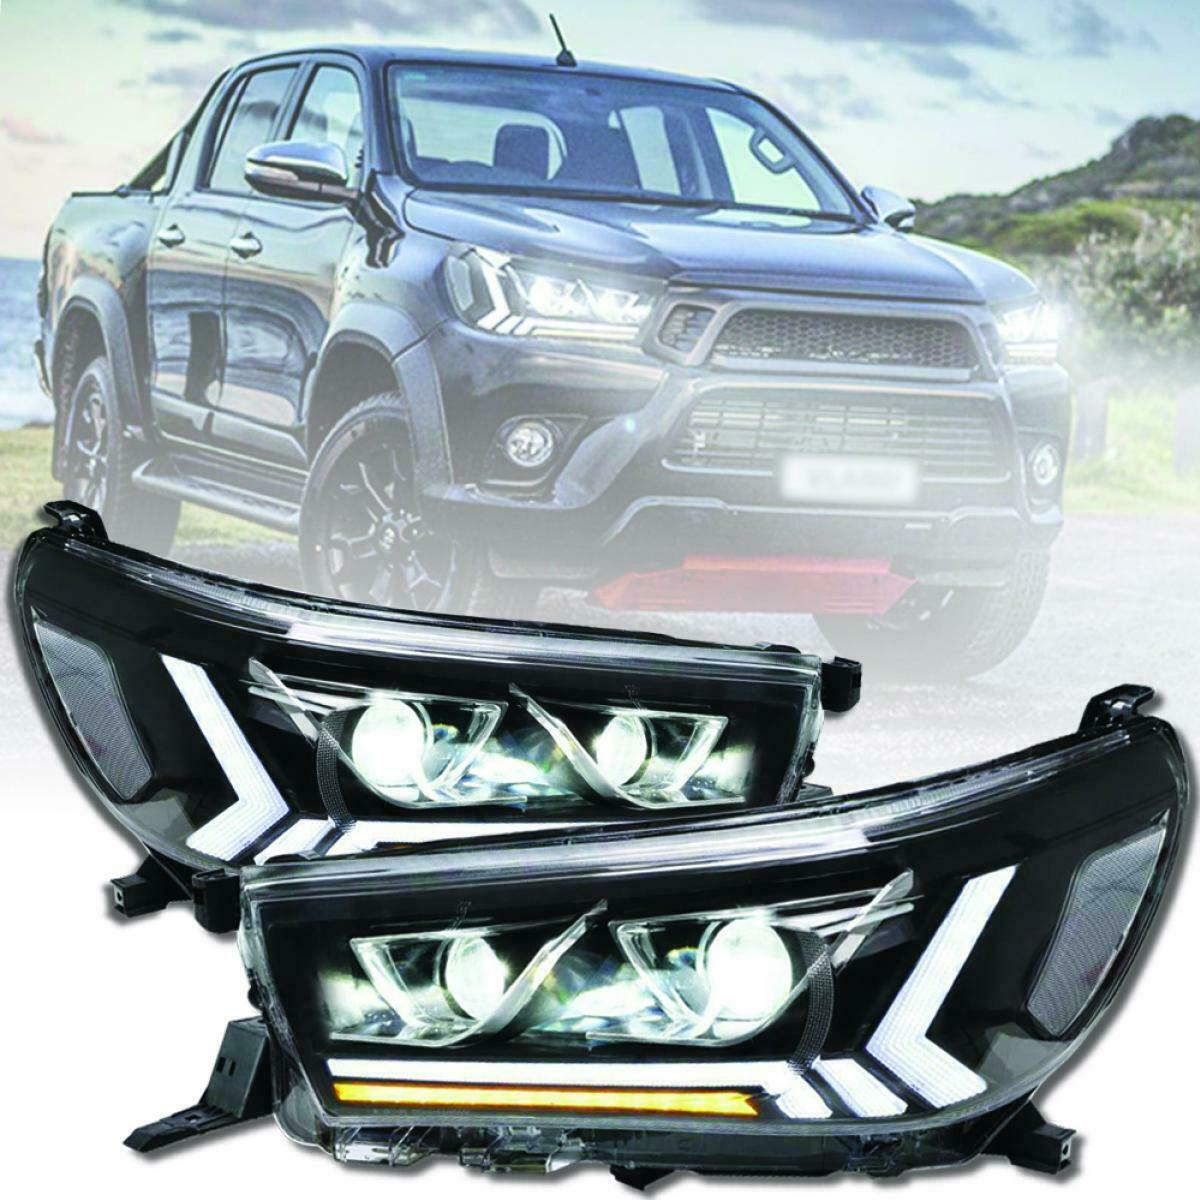 Headlight for TOYOTA HILUX Full LED DRL Sequential Turn Signal Lamp 2015-2019